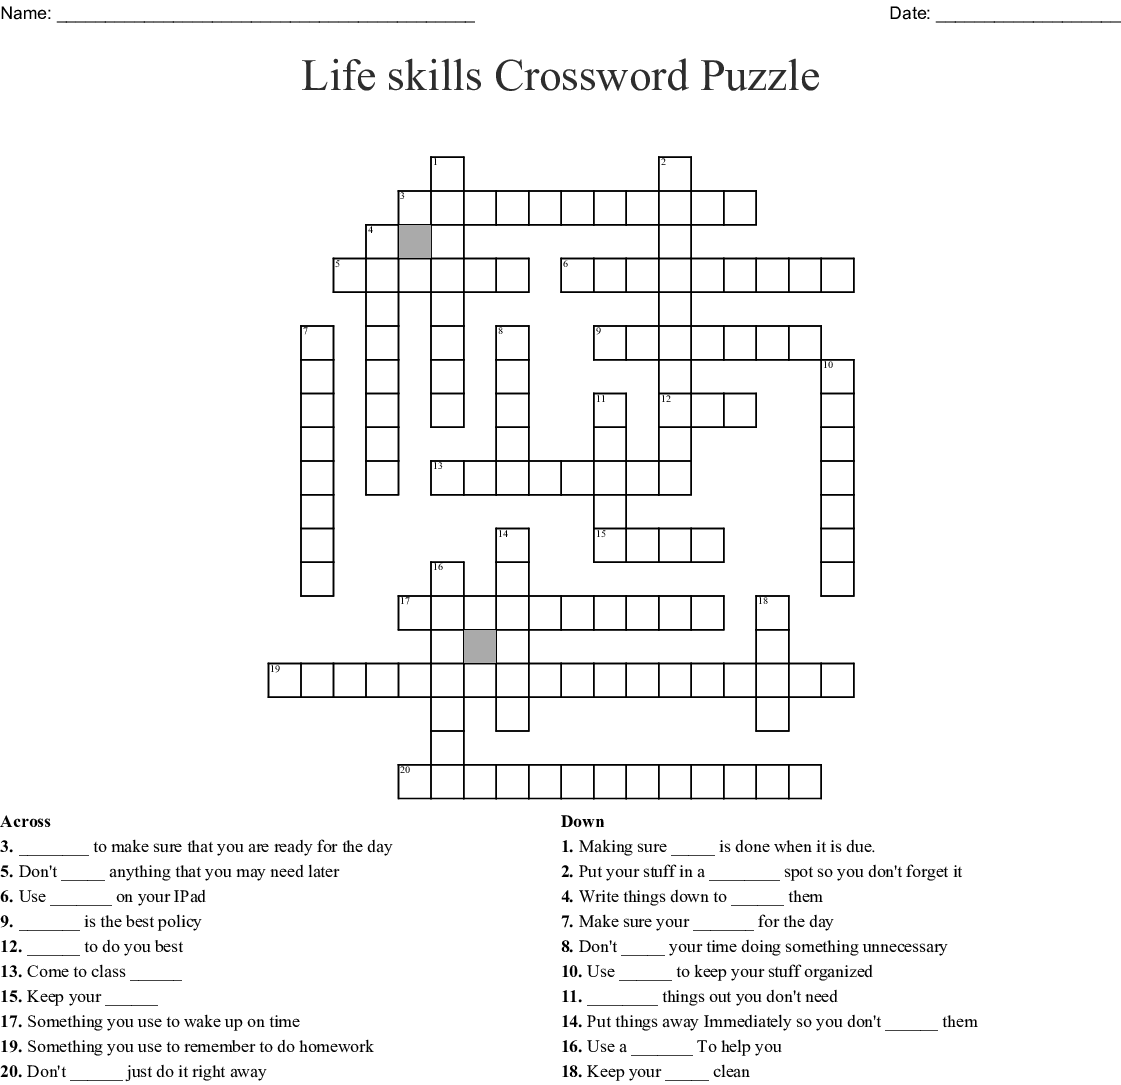 Life Skills Crossword Puzzle